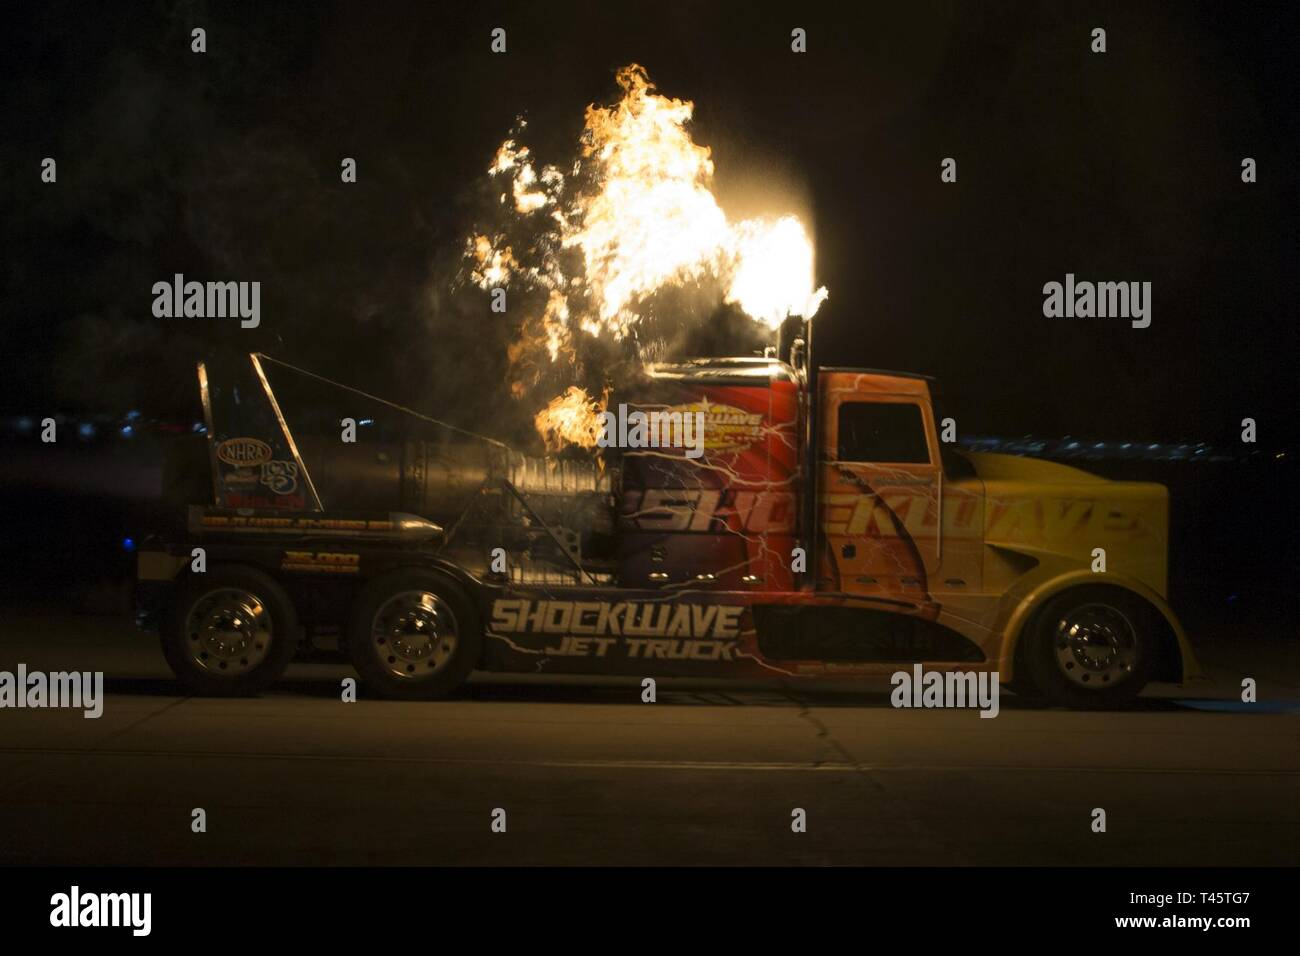 Chris Darnell, driver of the Shockwave Jet Truck, drives